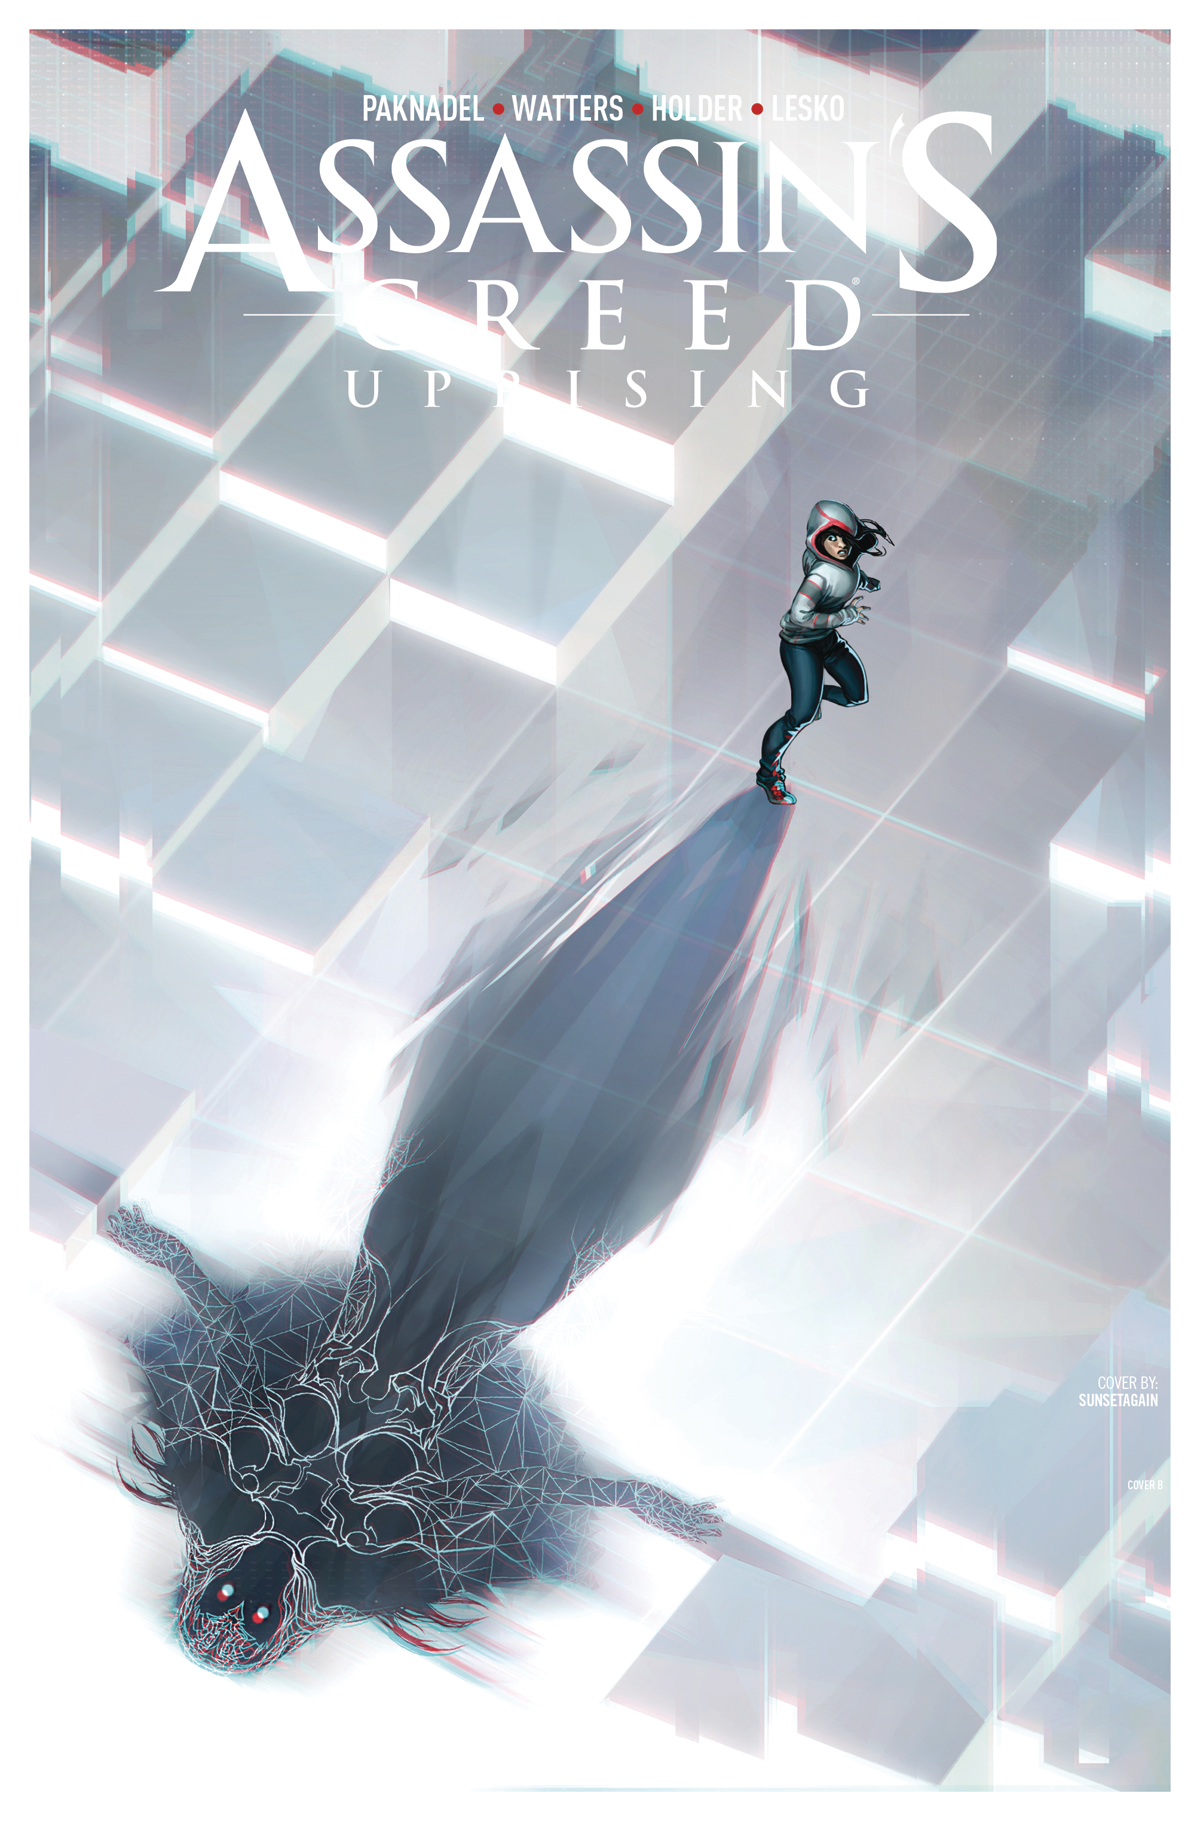 ASSASSINS CREED UPRISING #6 CVR B GLASS